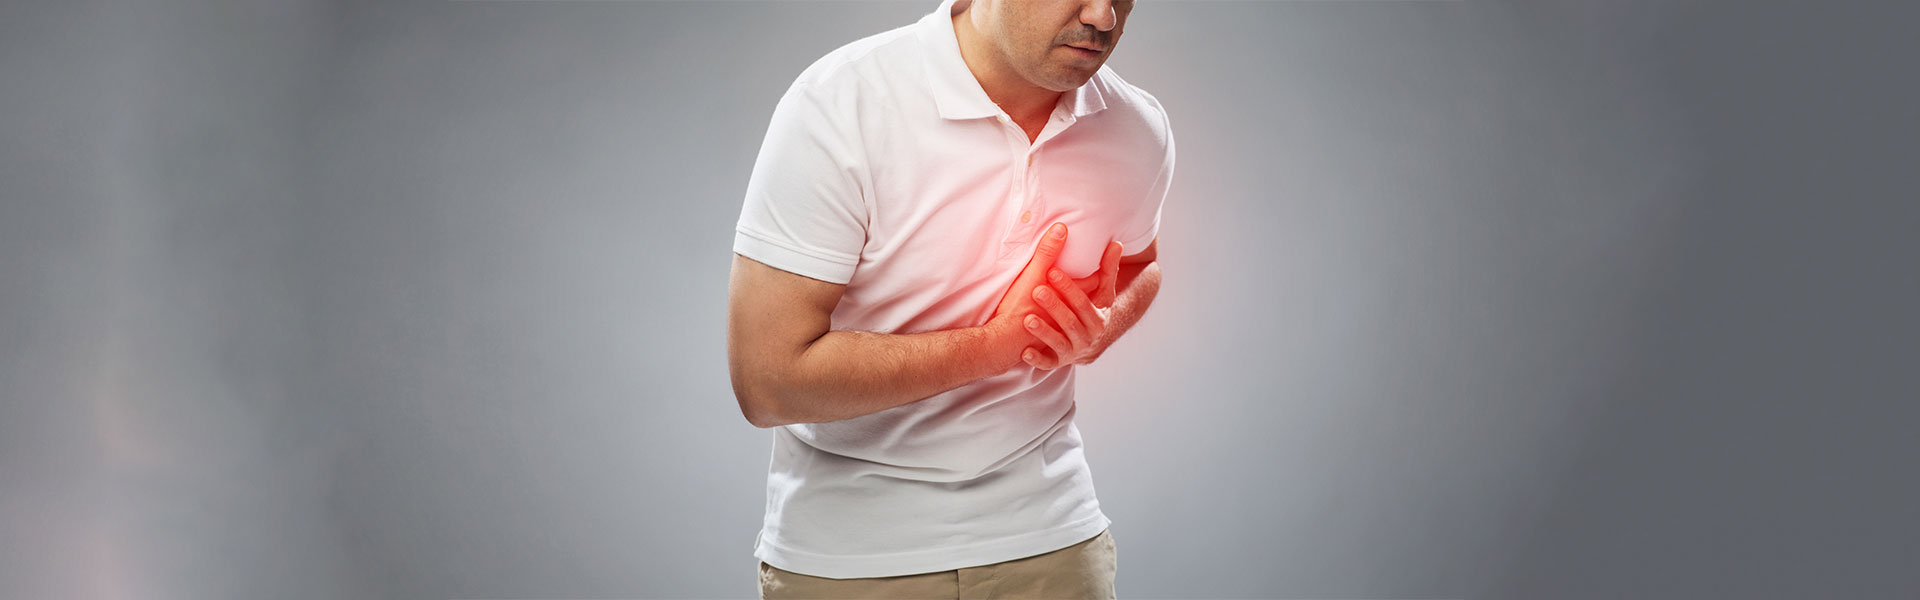 Beginner's Guide: All You Need to Grasp About Heart Attacks